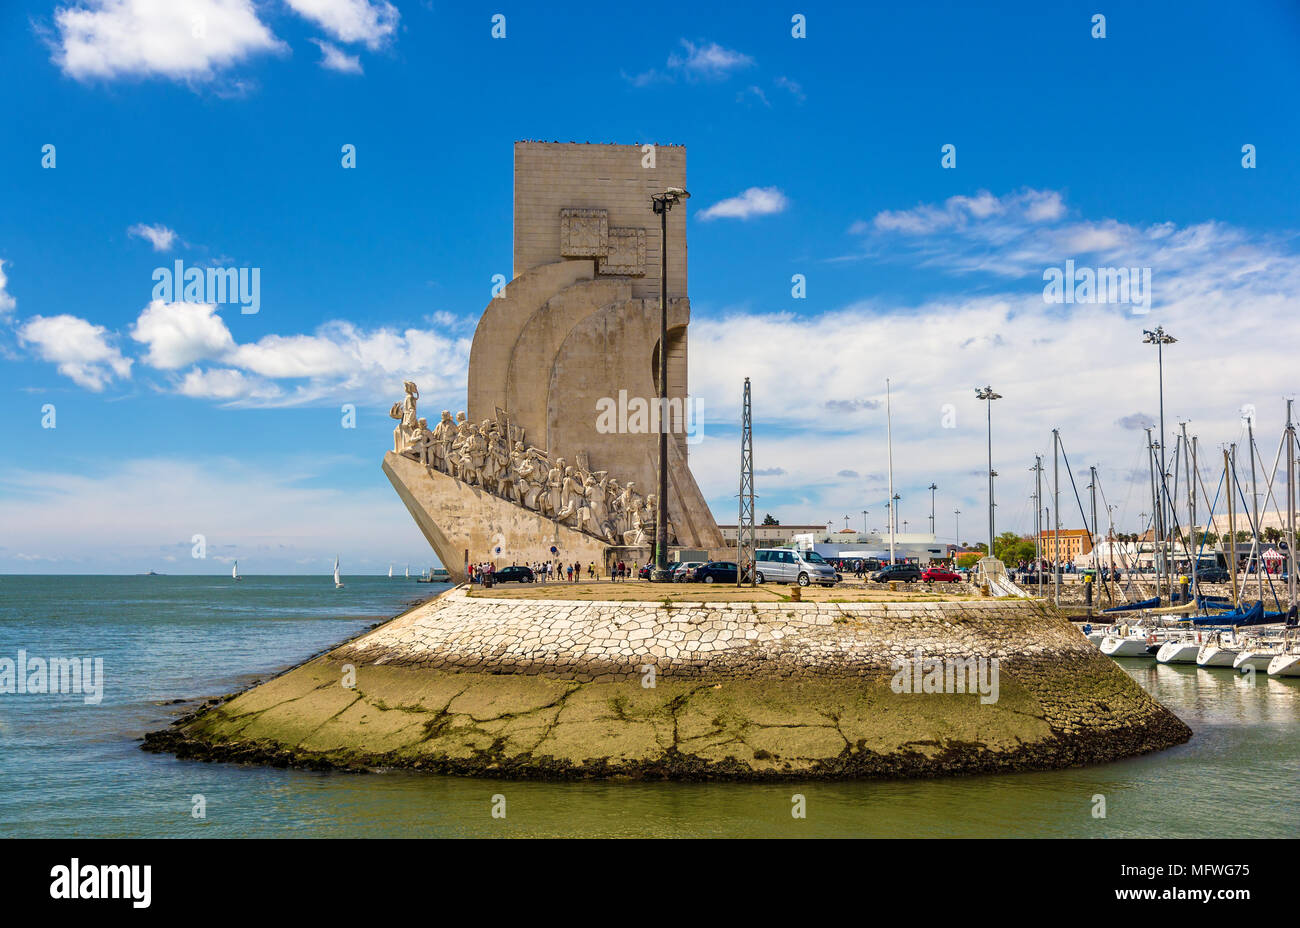 View of Monument to the Discoveries in Lisbon, Portugal - Stock Image